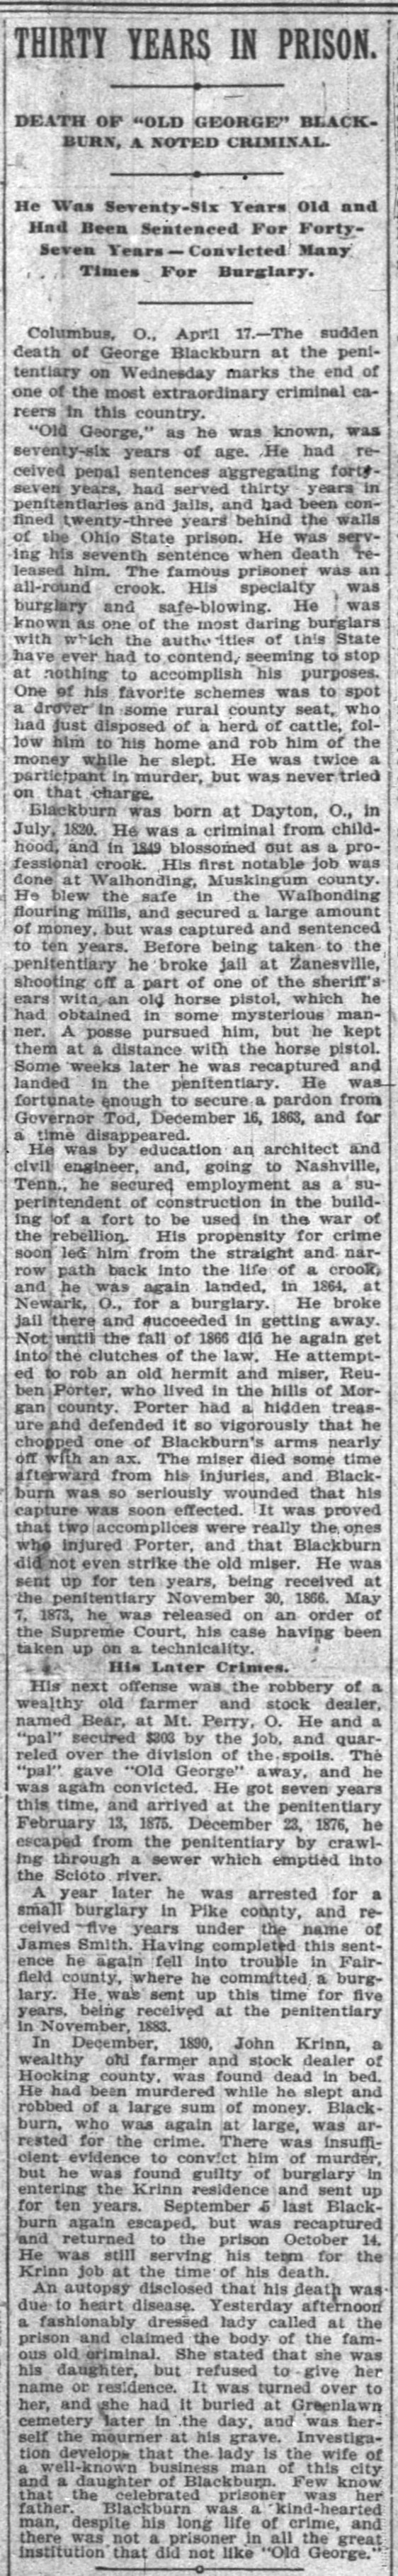 The_Indianapolis_News_Fri__Apr_17__1896_